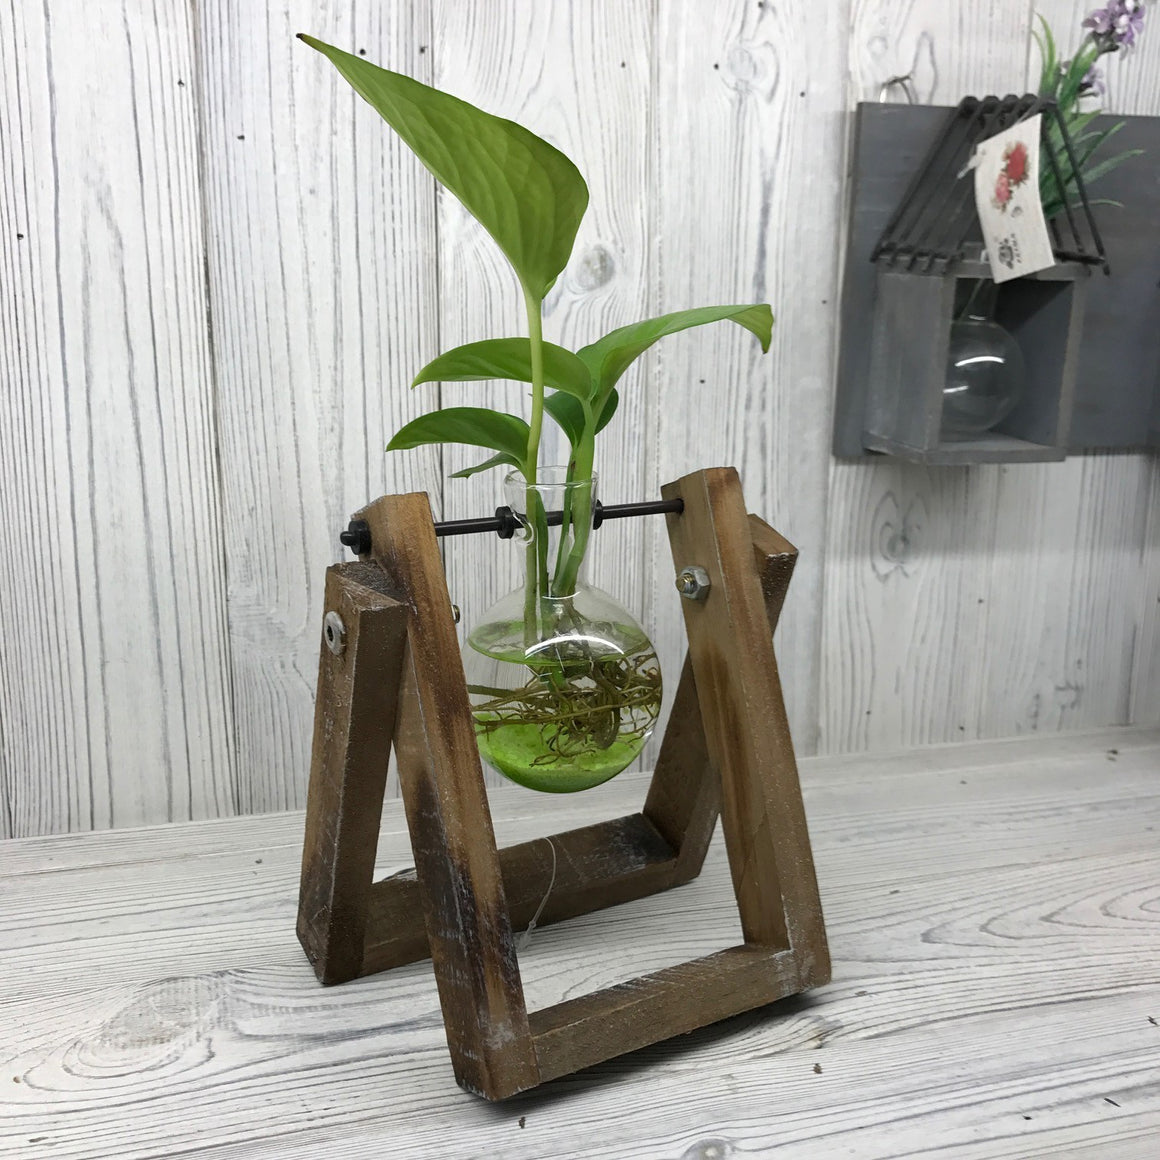 Hydroponic Home Decor - One Pot Wooden Stand